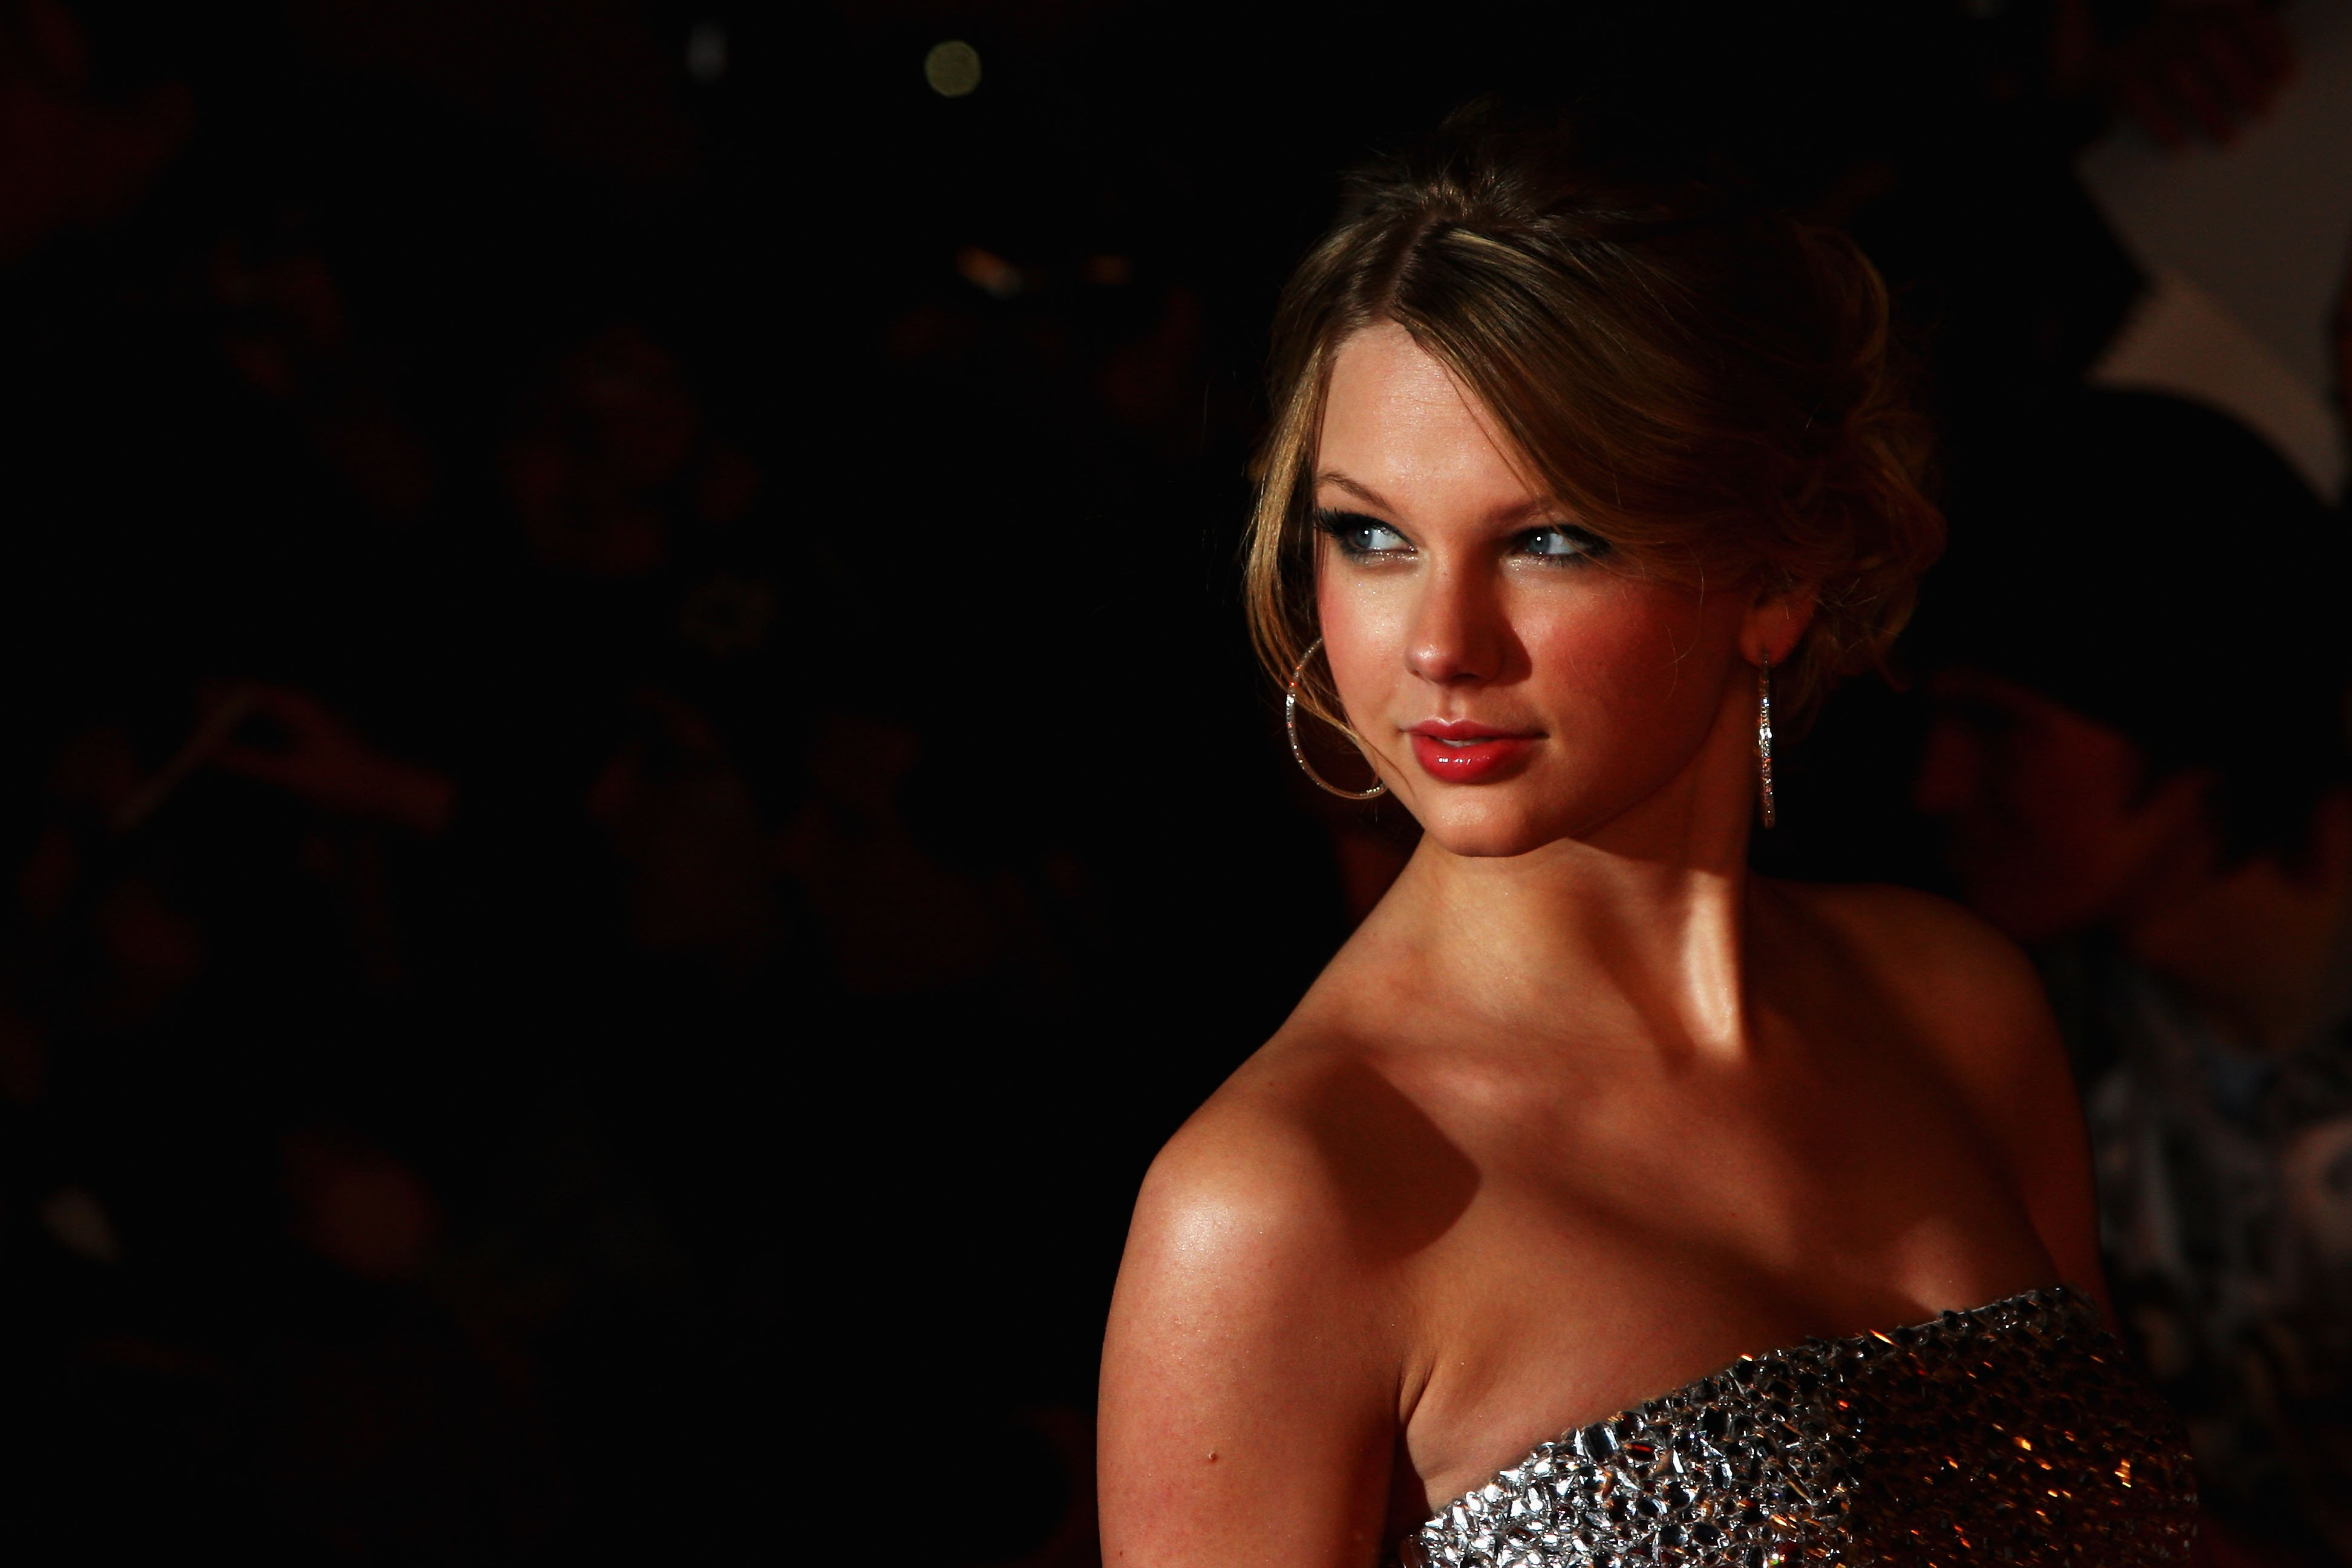 Image Source: Getty Images/A photo of Taylor Swift